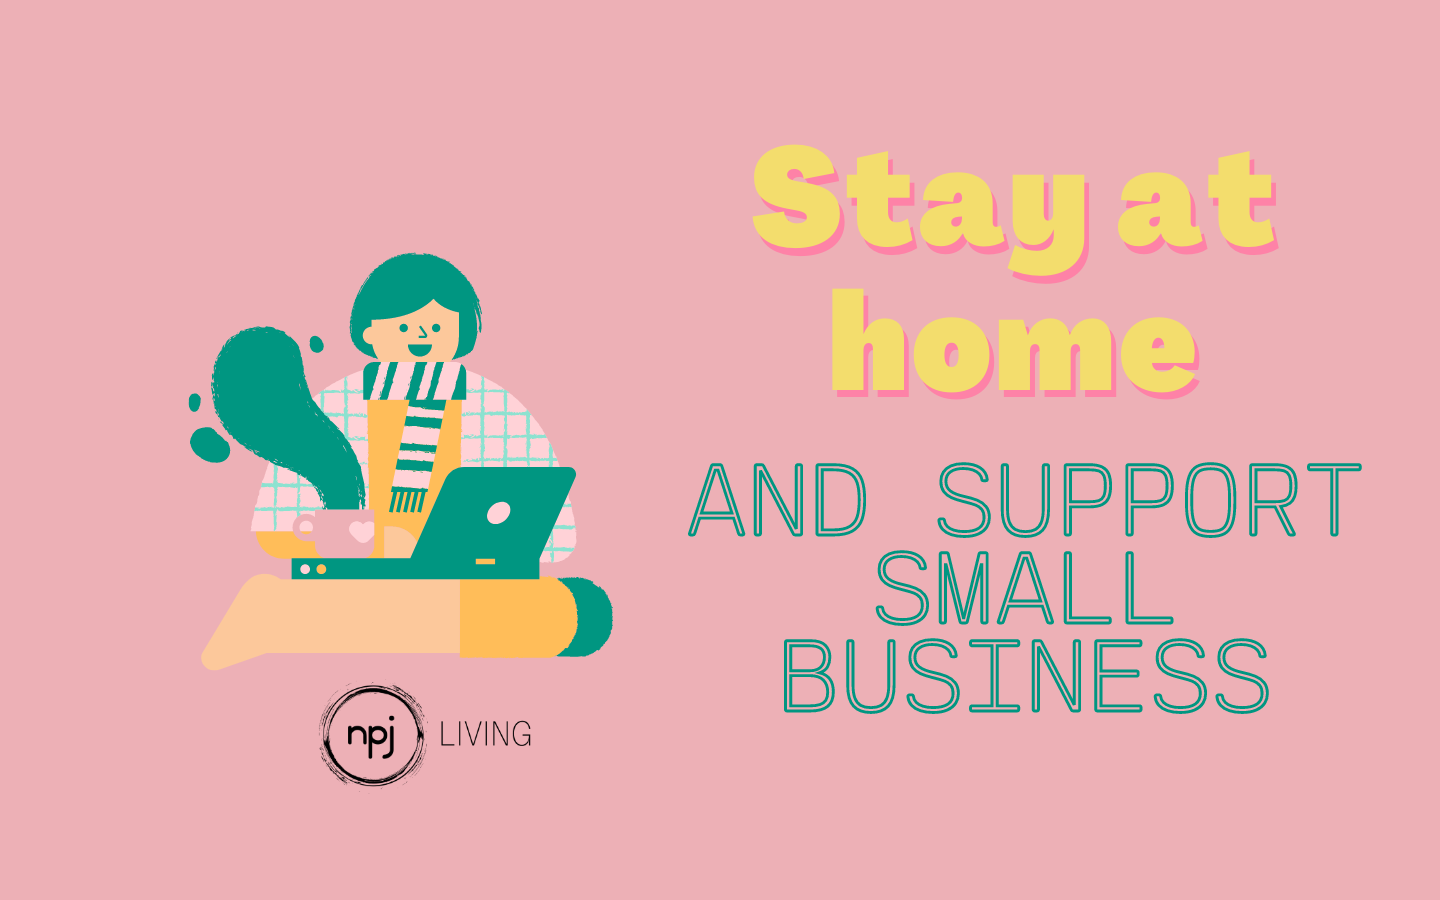 How to Stay Busy at Home and Support Small Business at the Same Time